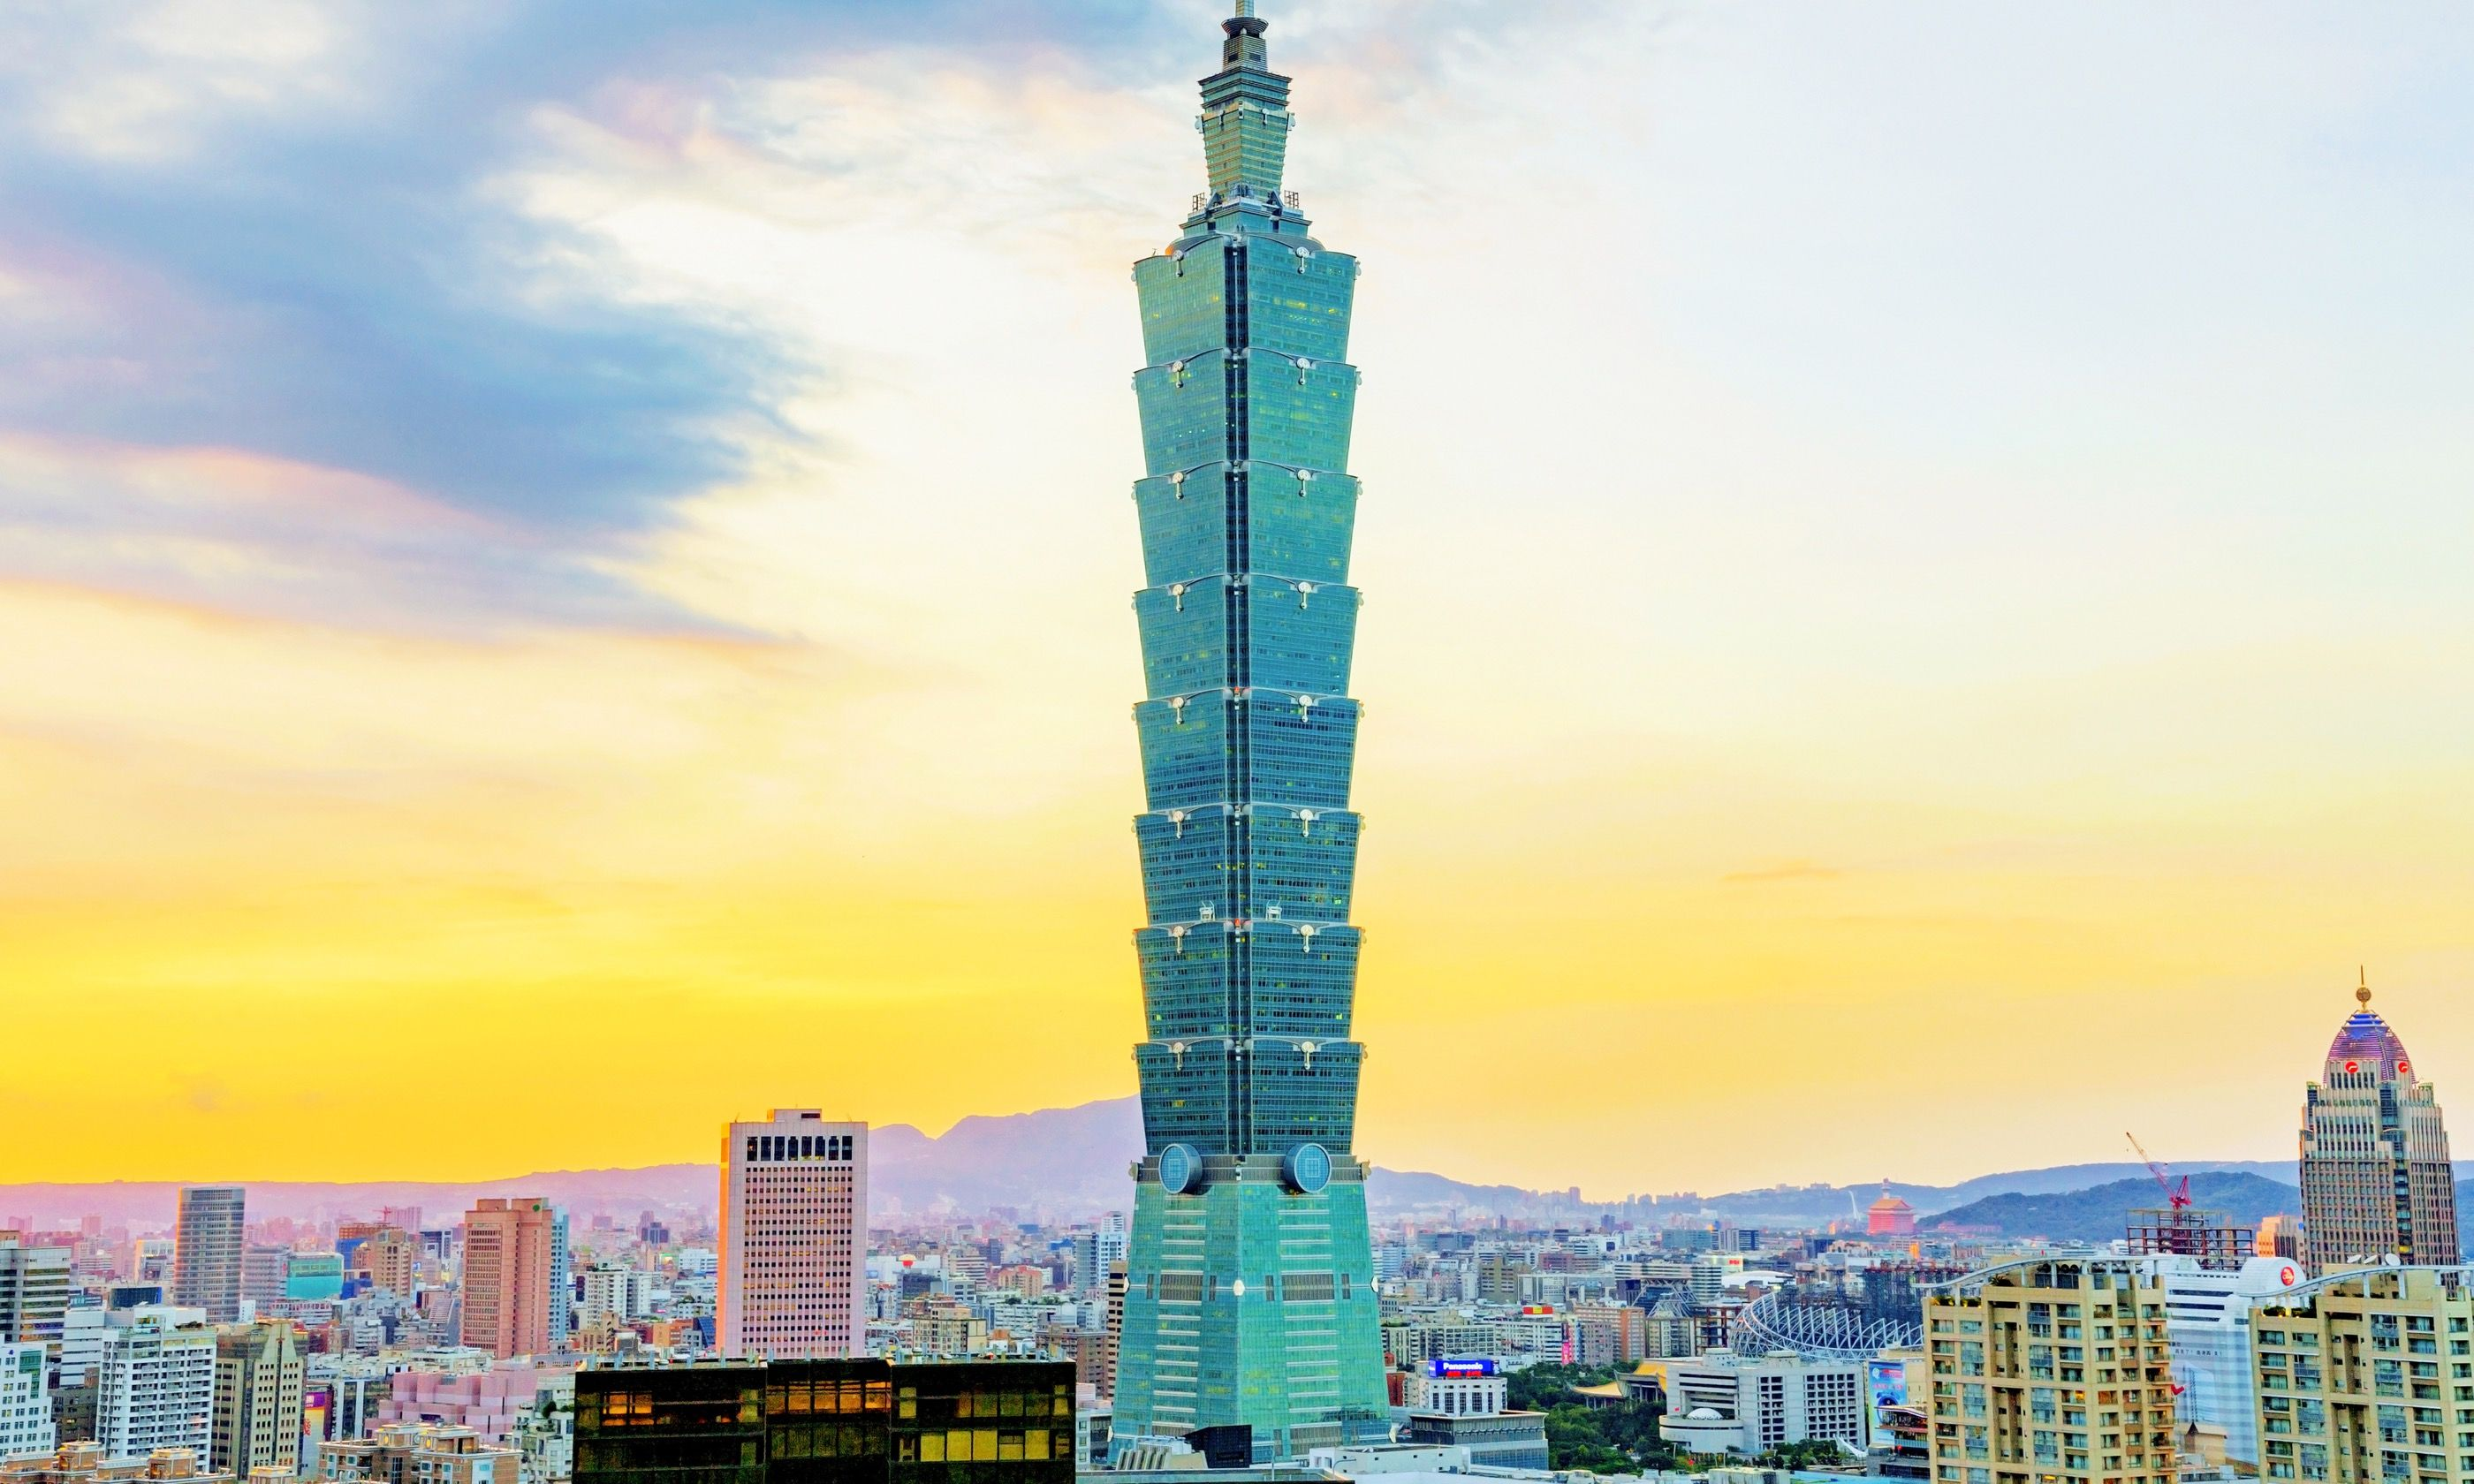 Taipei 101 as seen from Elephant Mountain (Dreamstime)